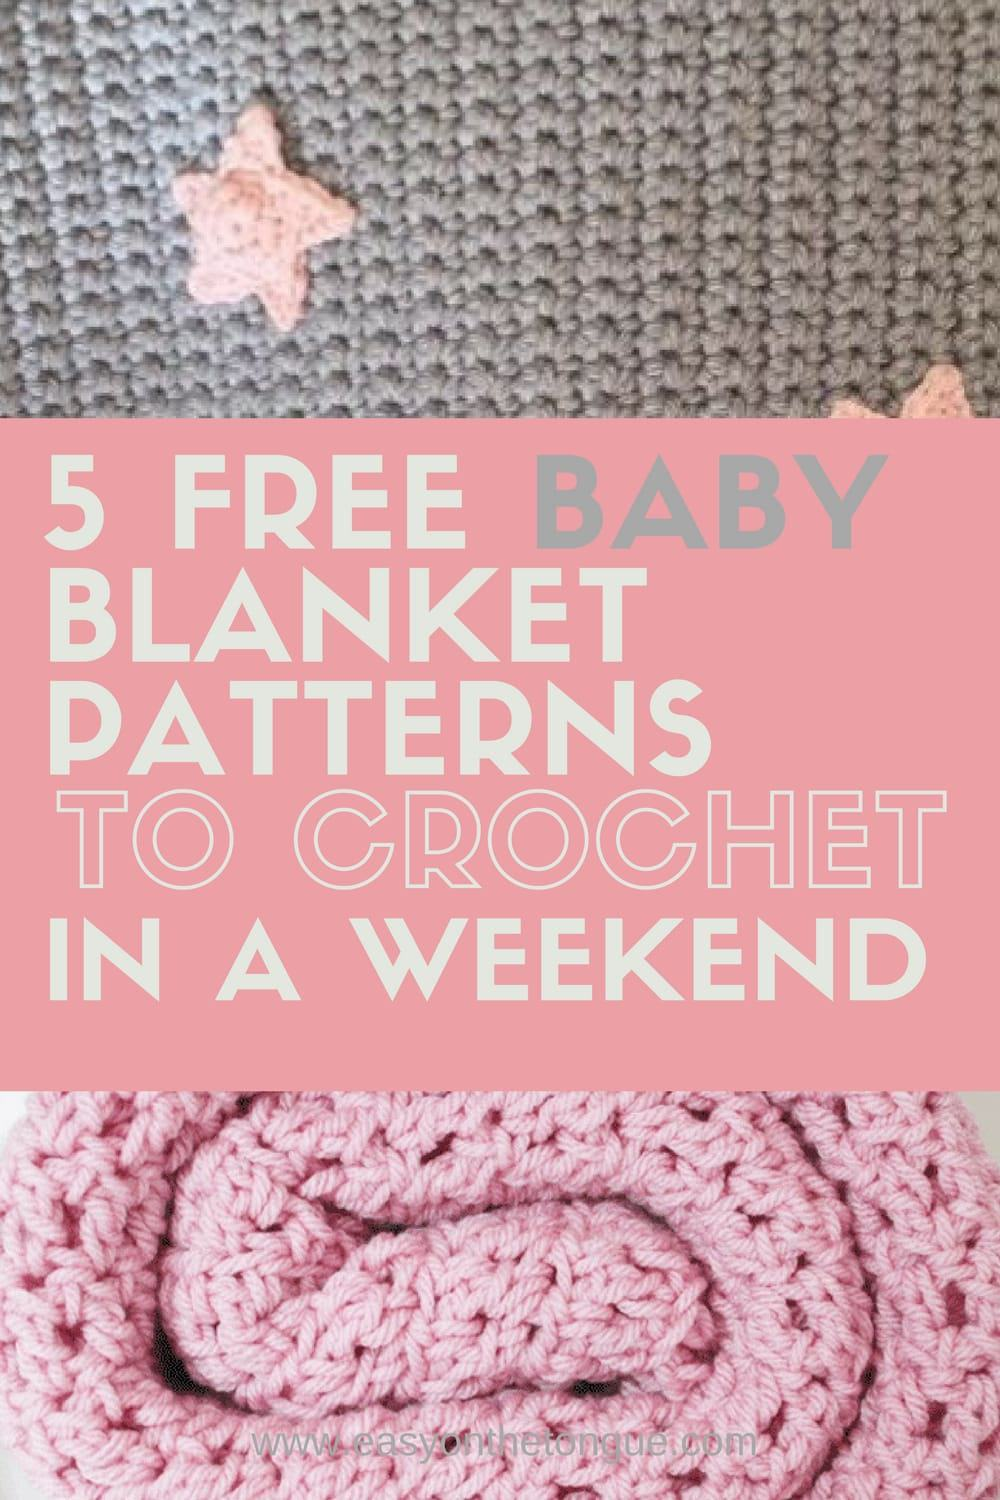 12 Free Baby Blanket Patterns to Crochet in a Weekend